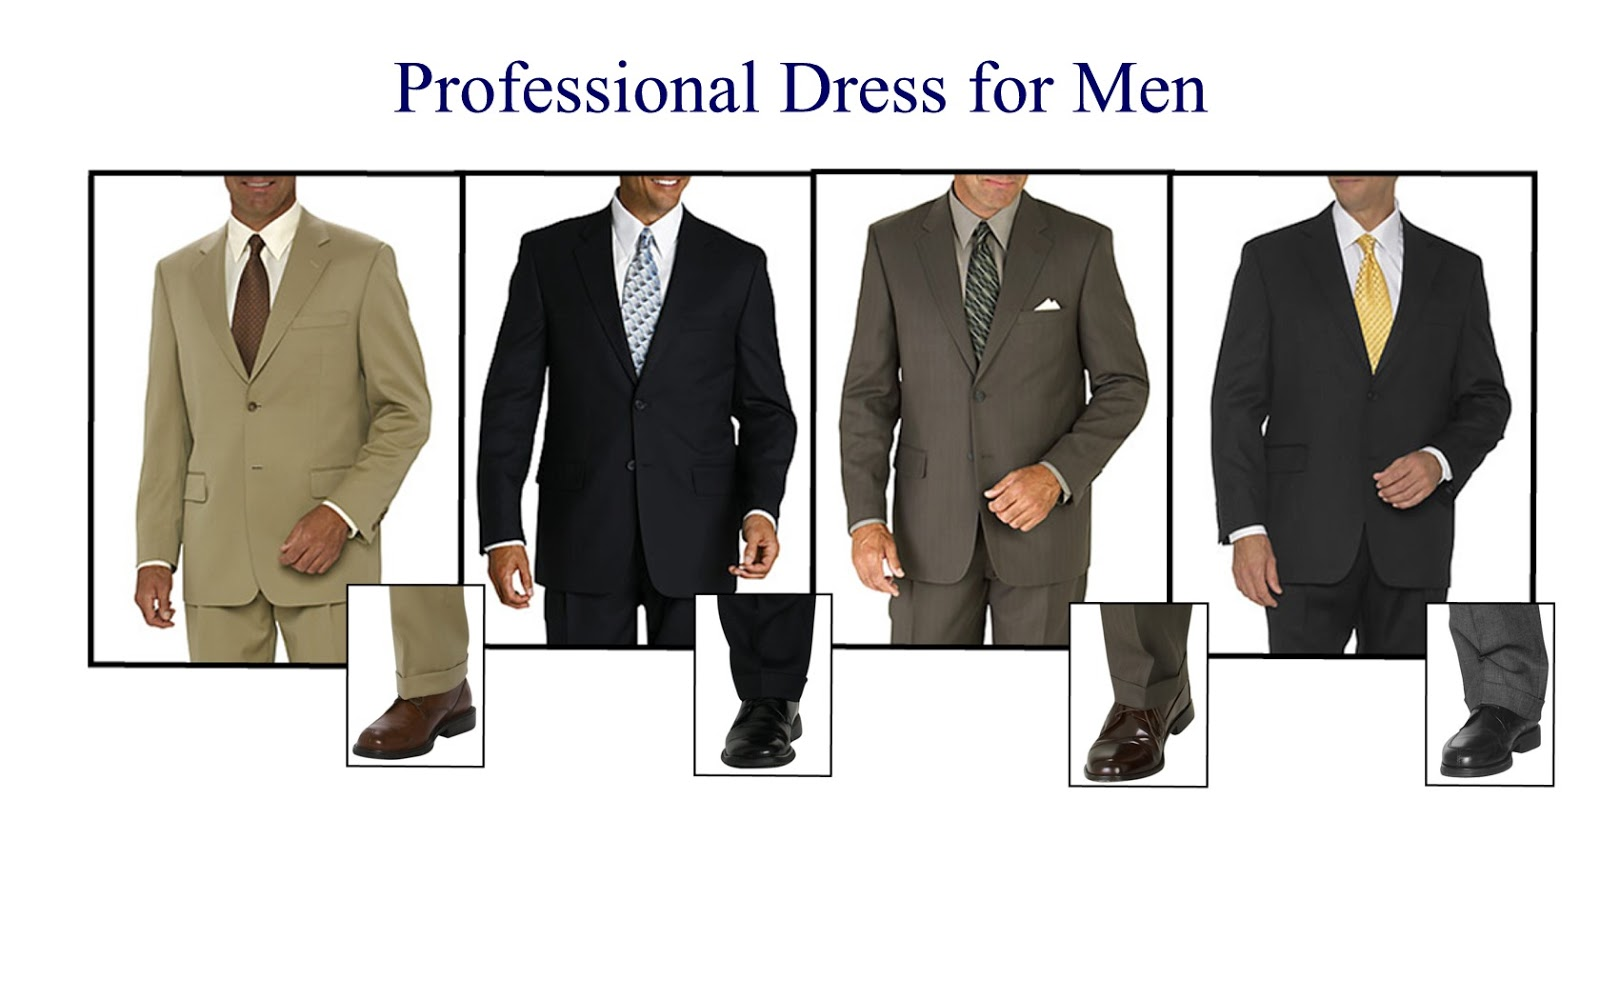 Importance of writing academically and professional dress